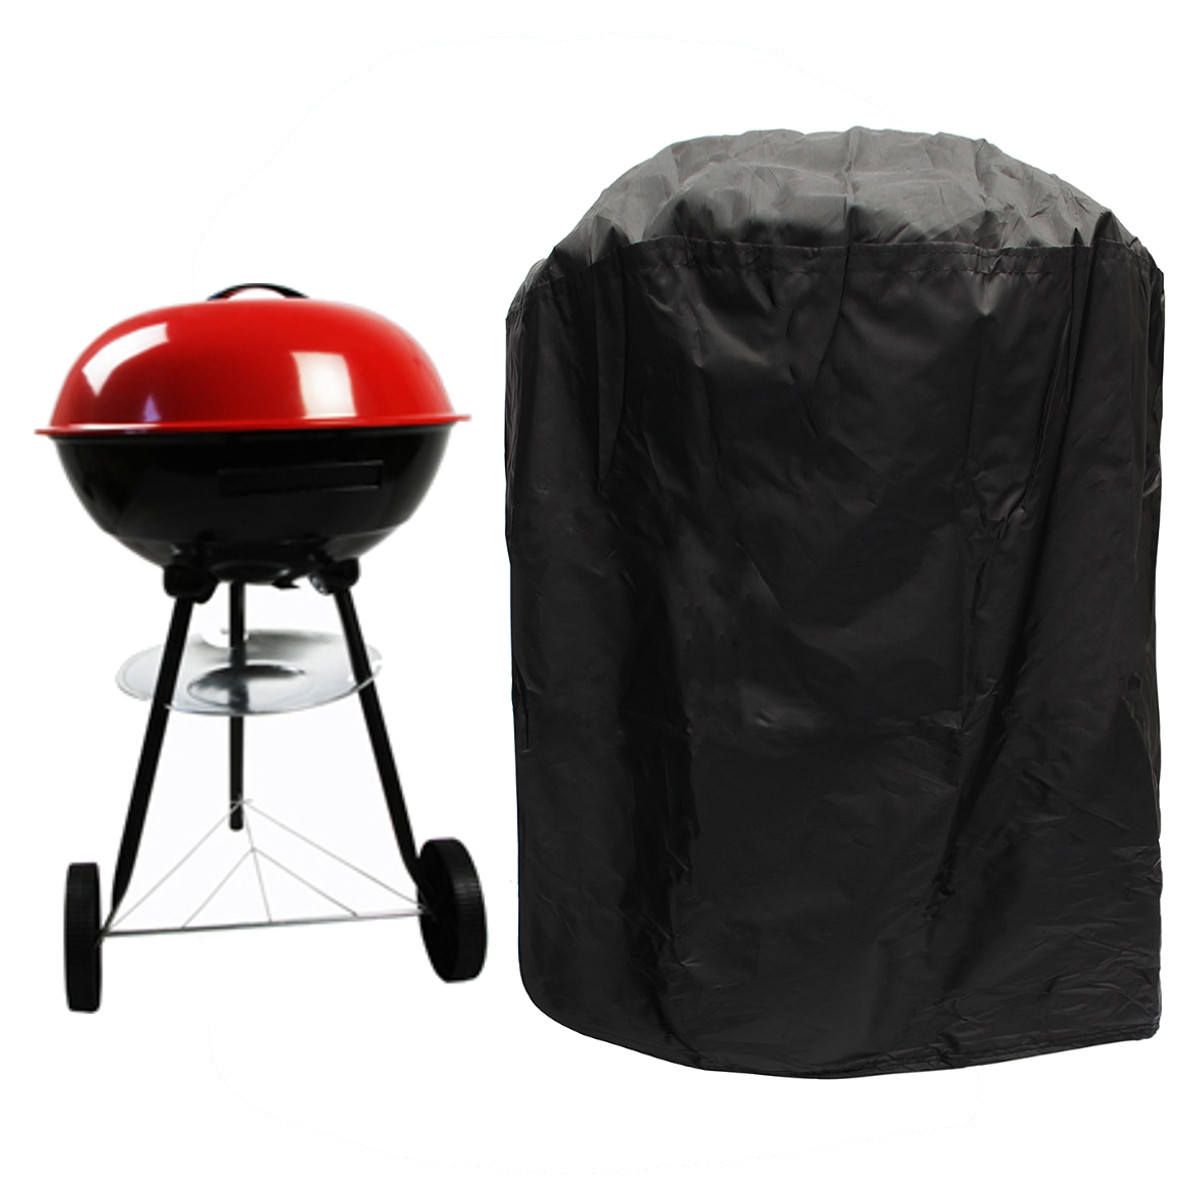 77cm Round Waterproof BBQ Stove Cover Gas Electric Barbecue Portable Grill Protector Black Color Dust Prevention(China (Mainland))